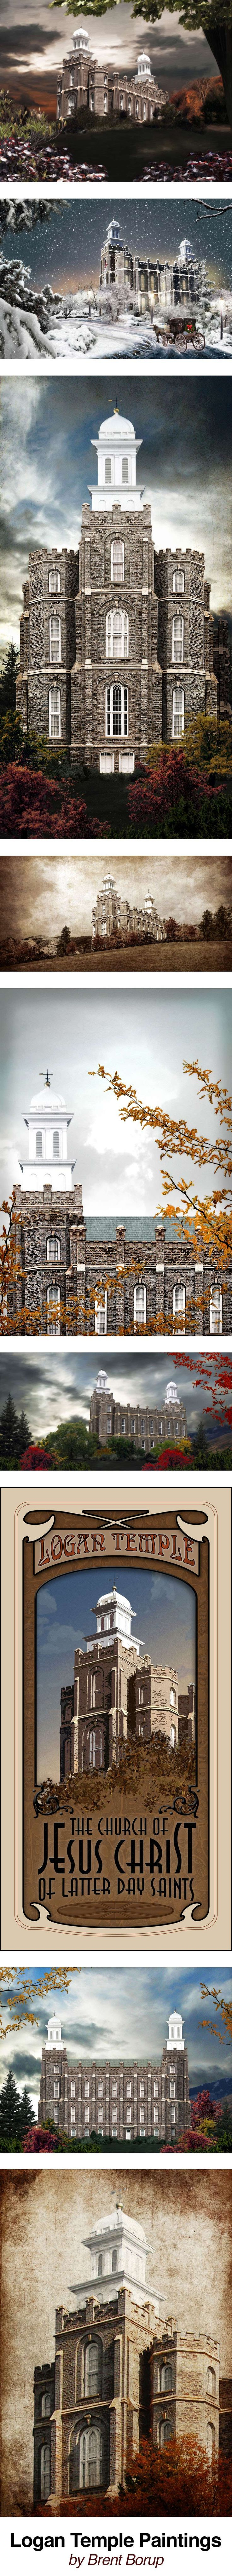 Logan Temple Paintings by Brent Borup.  Love this temple, it's where I married Lorin!